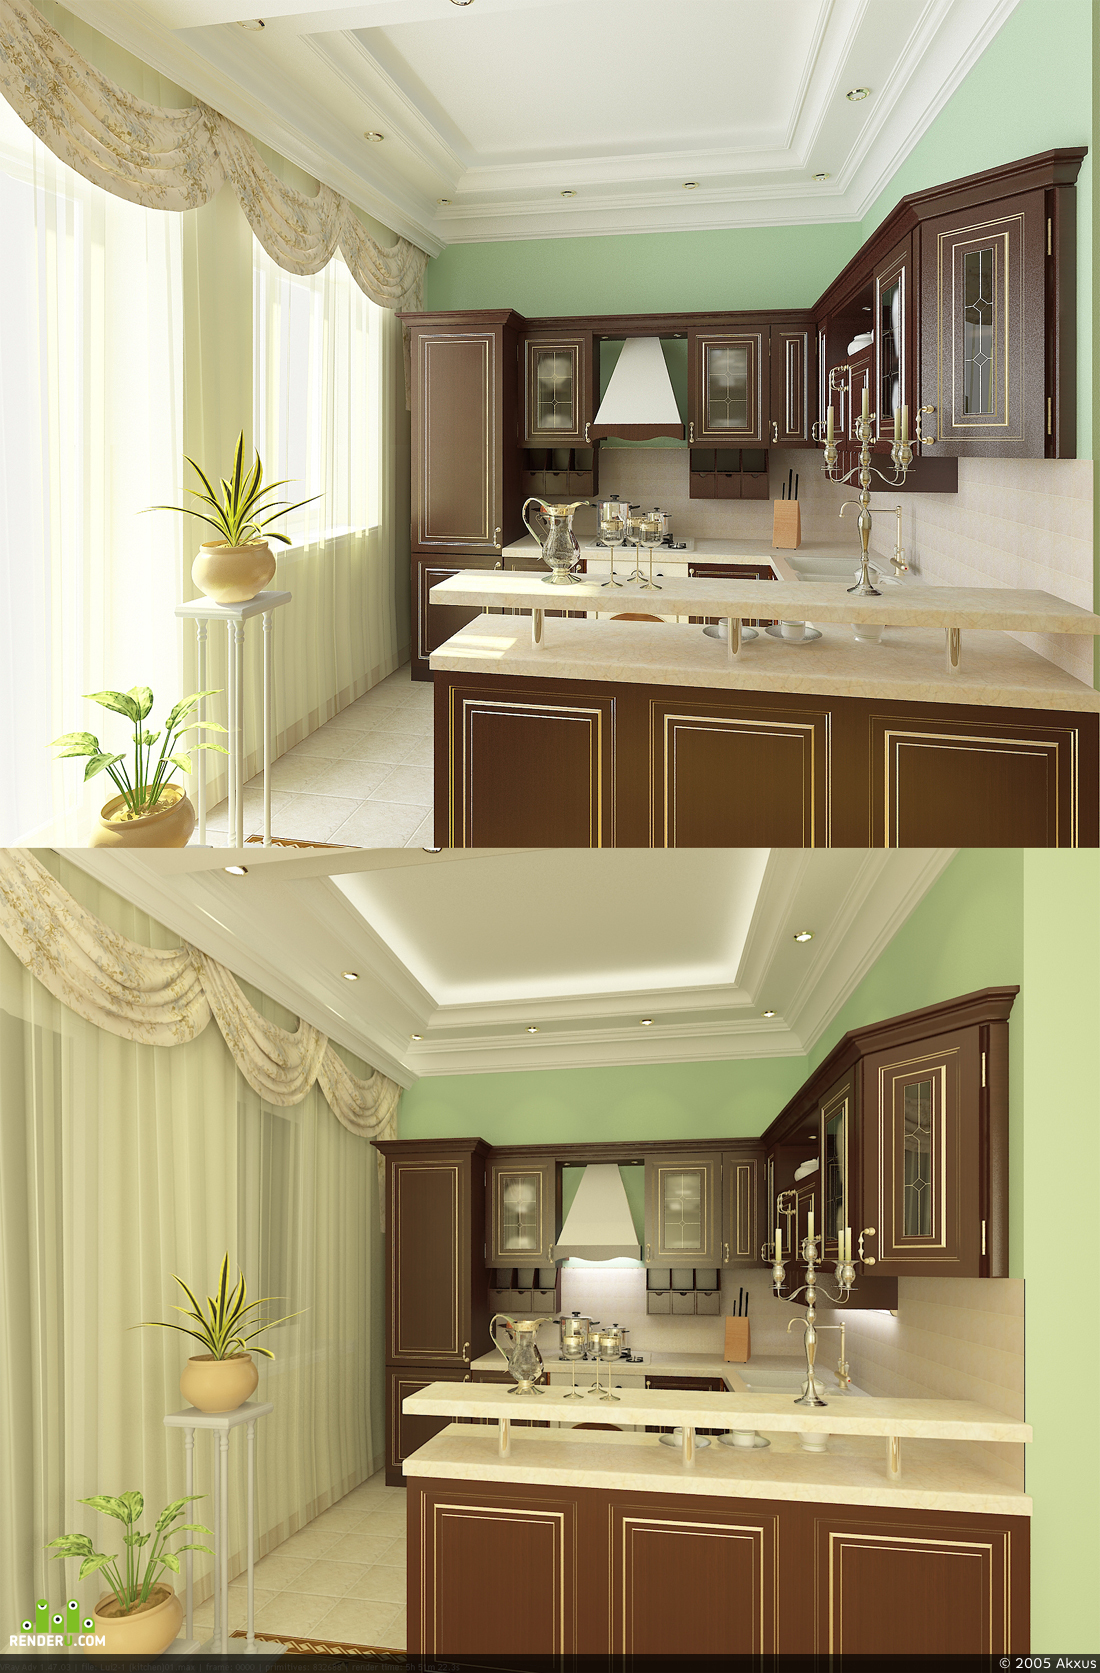 preview Iterior of Kitchen